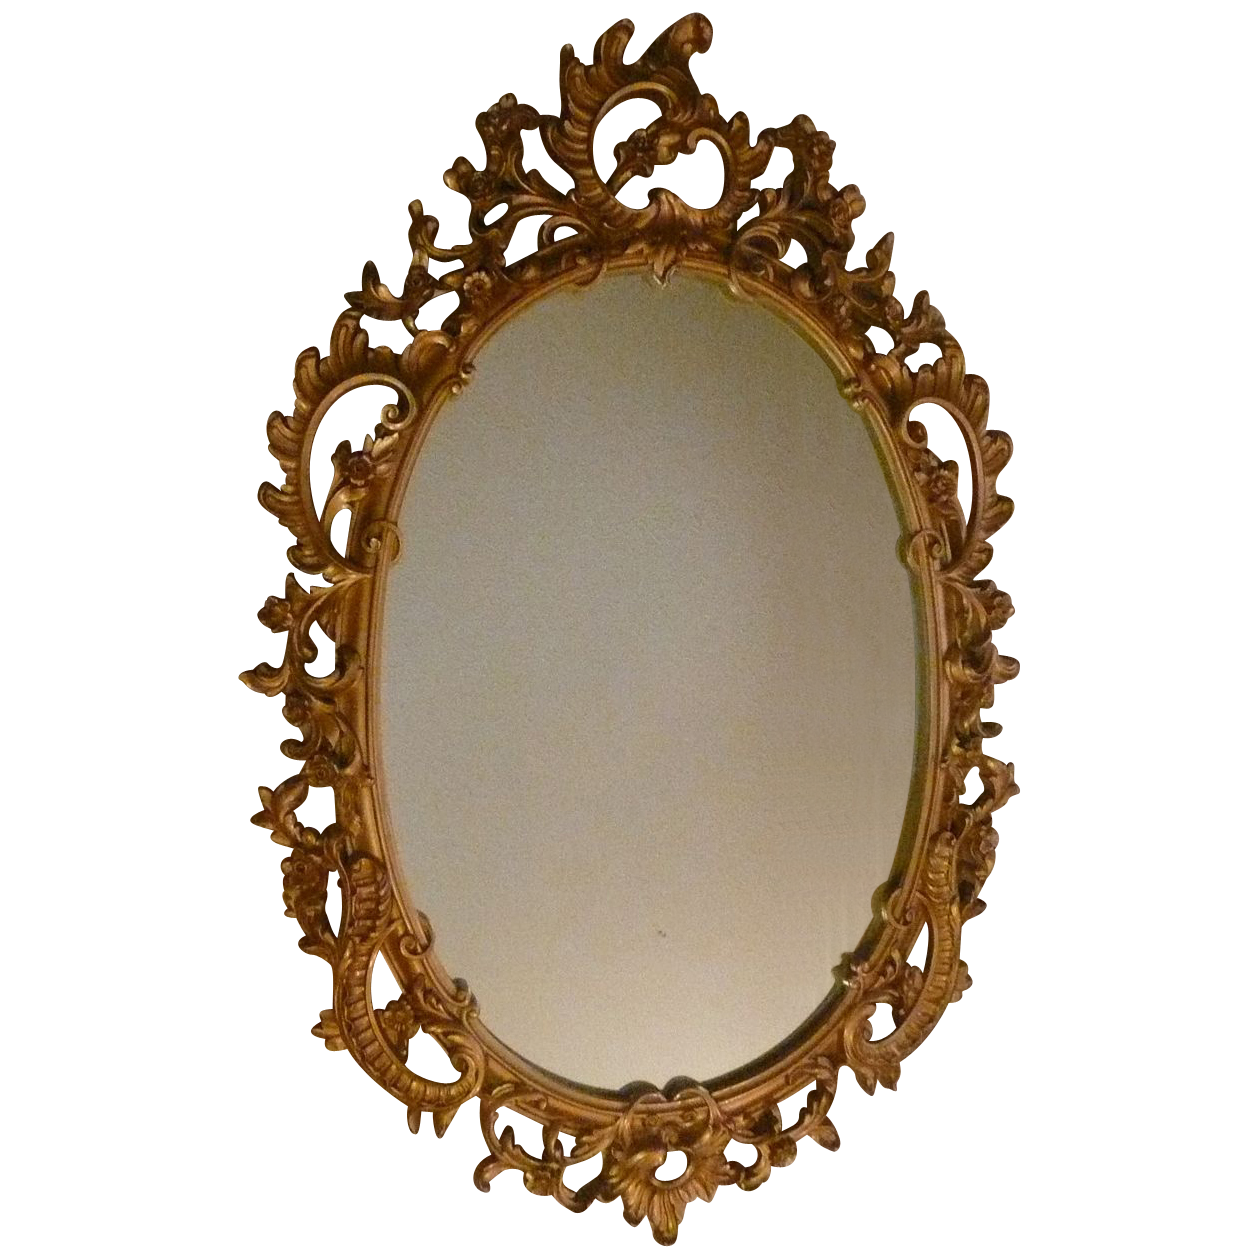 Syroco wood composite mirror with ornate scroll artgate for Ornate mirror